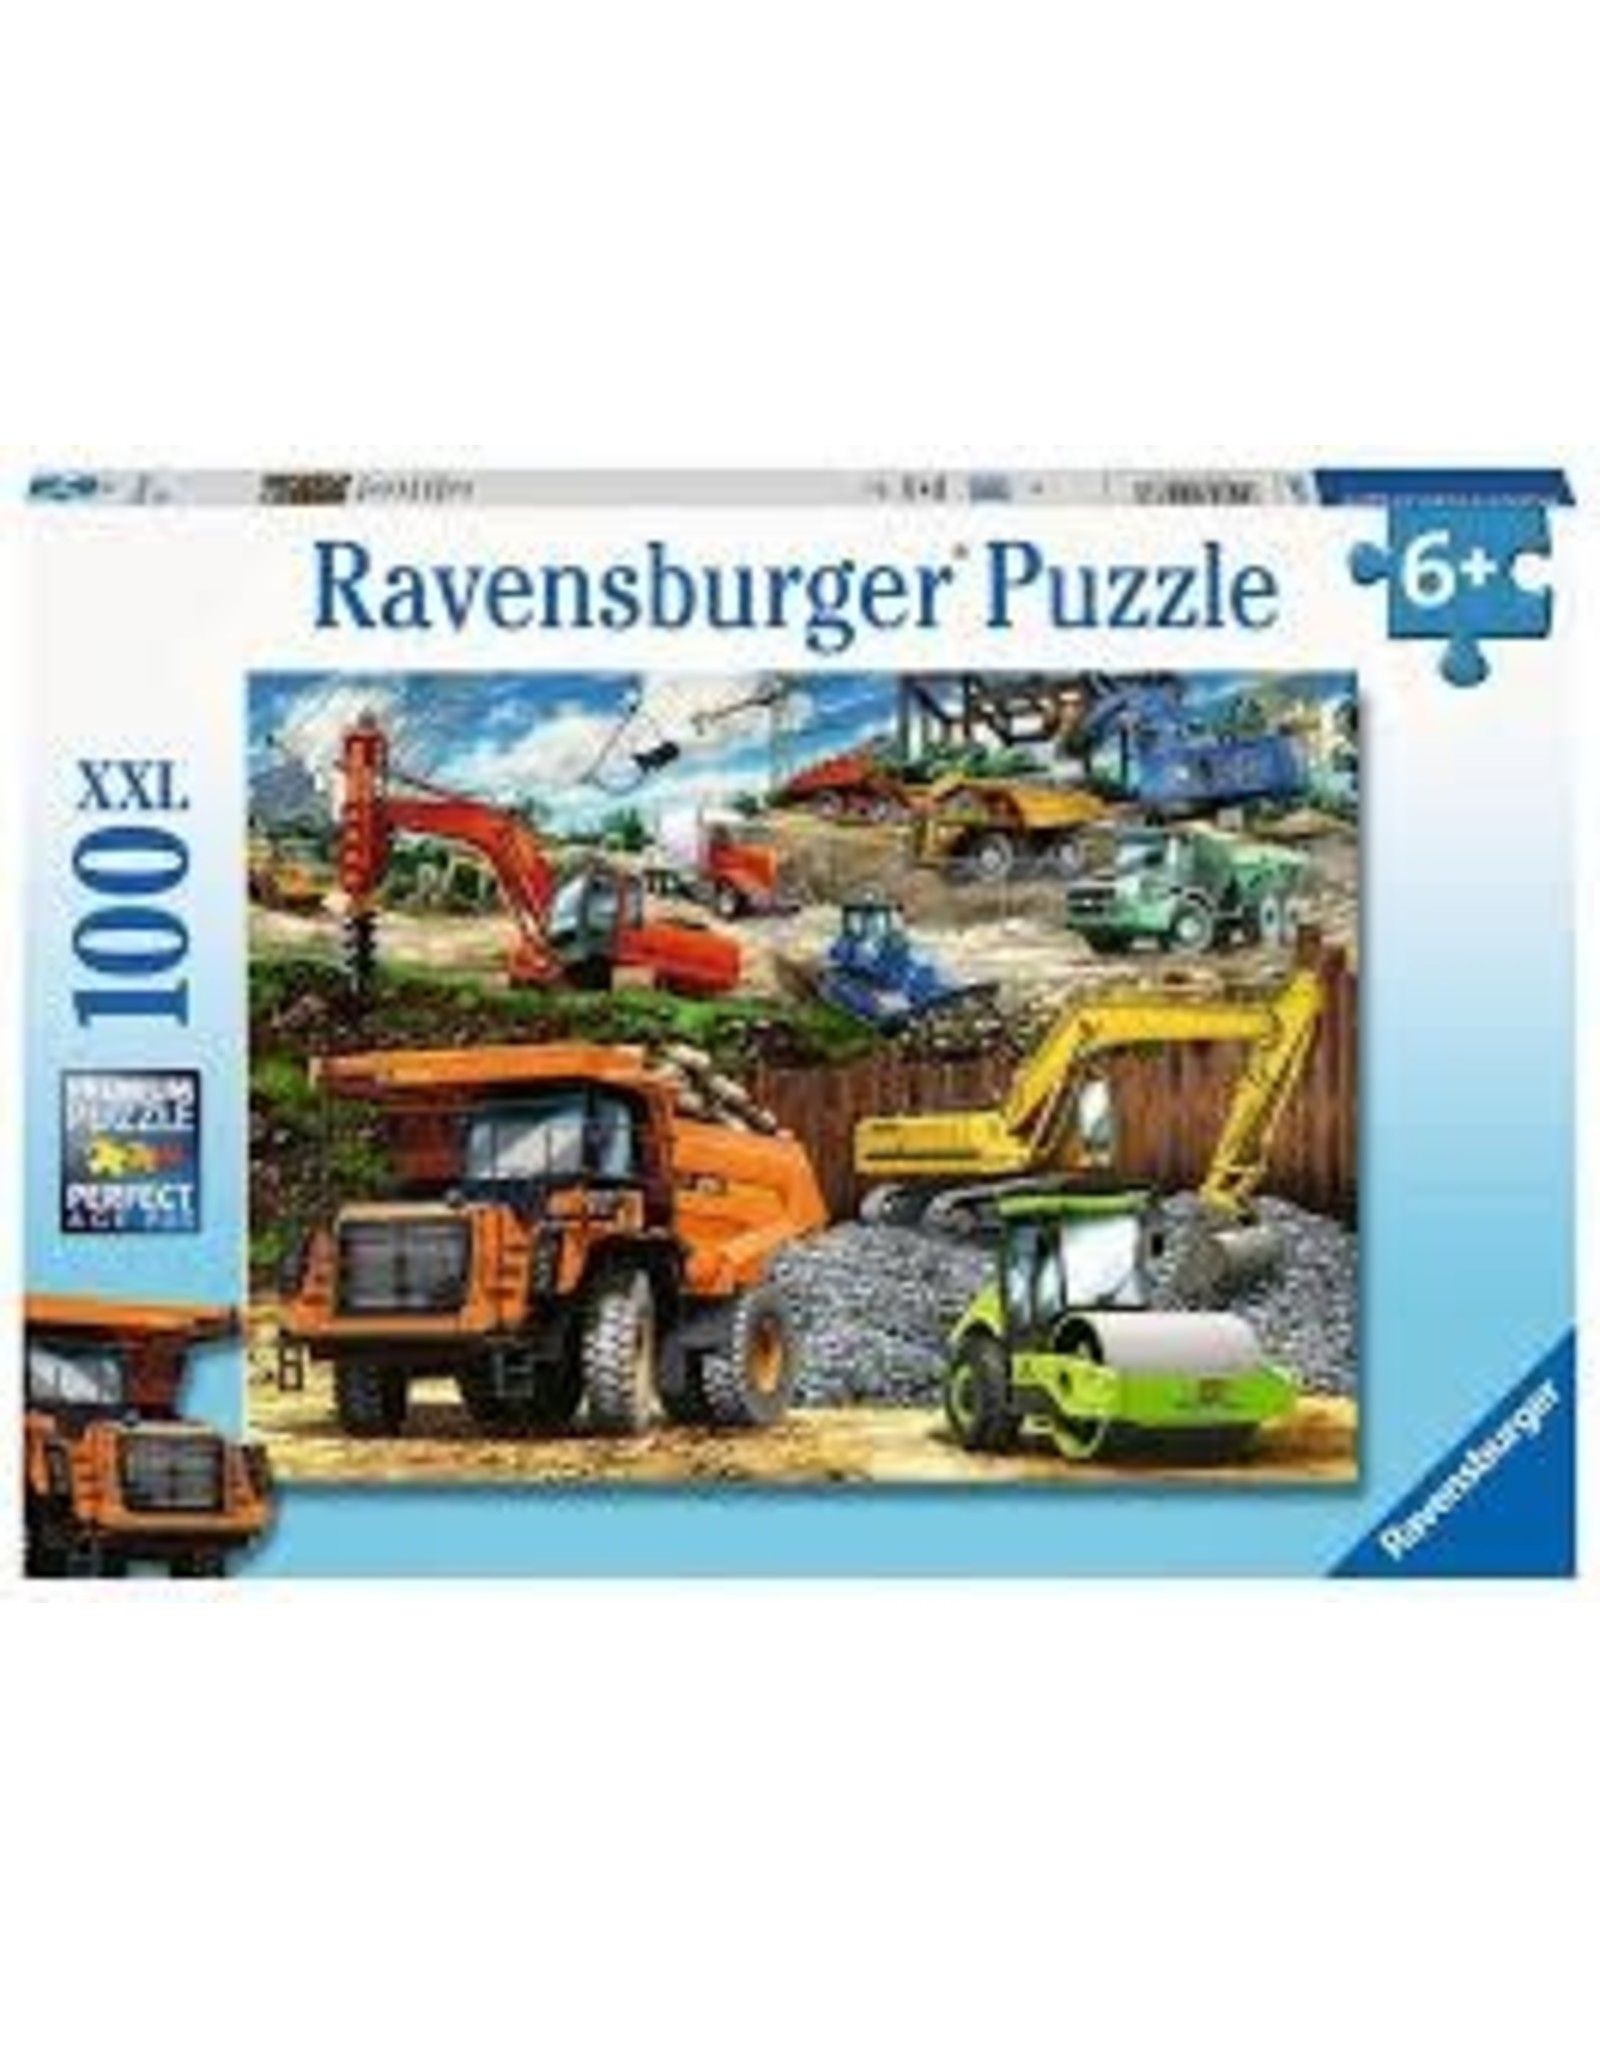 Ravensburger 100 pcs. Construction Trucks Puzzle